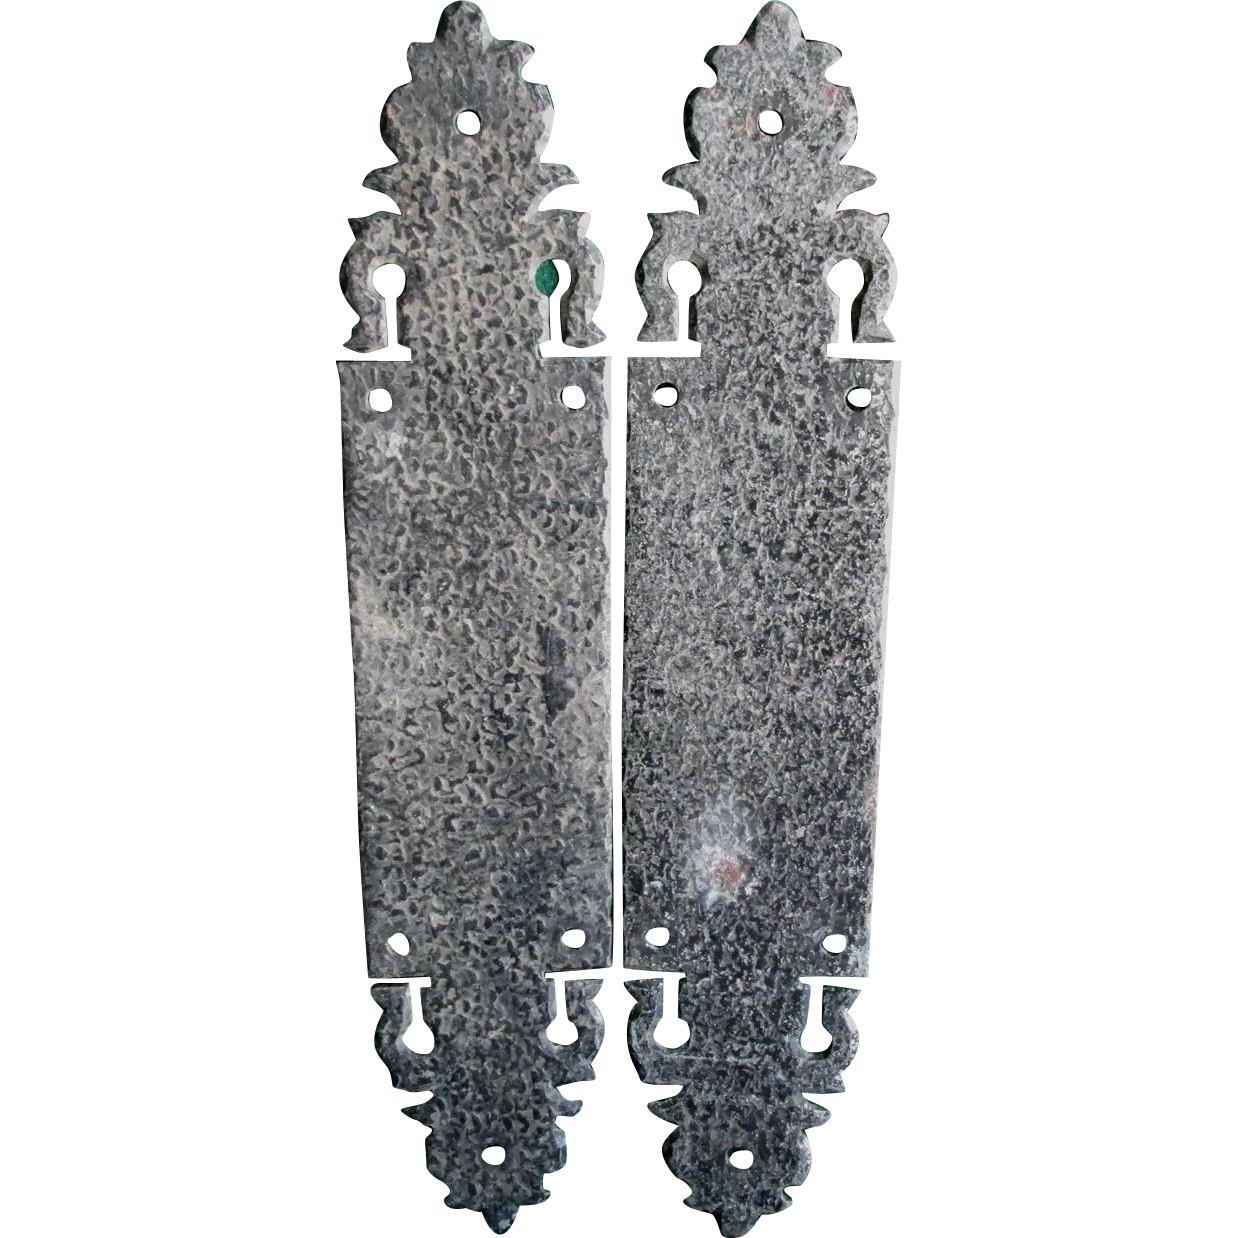 Antique Arts & Crafts Wrought Iron Door Push Plates